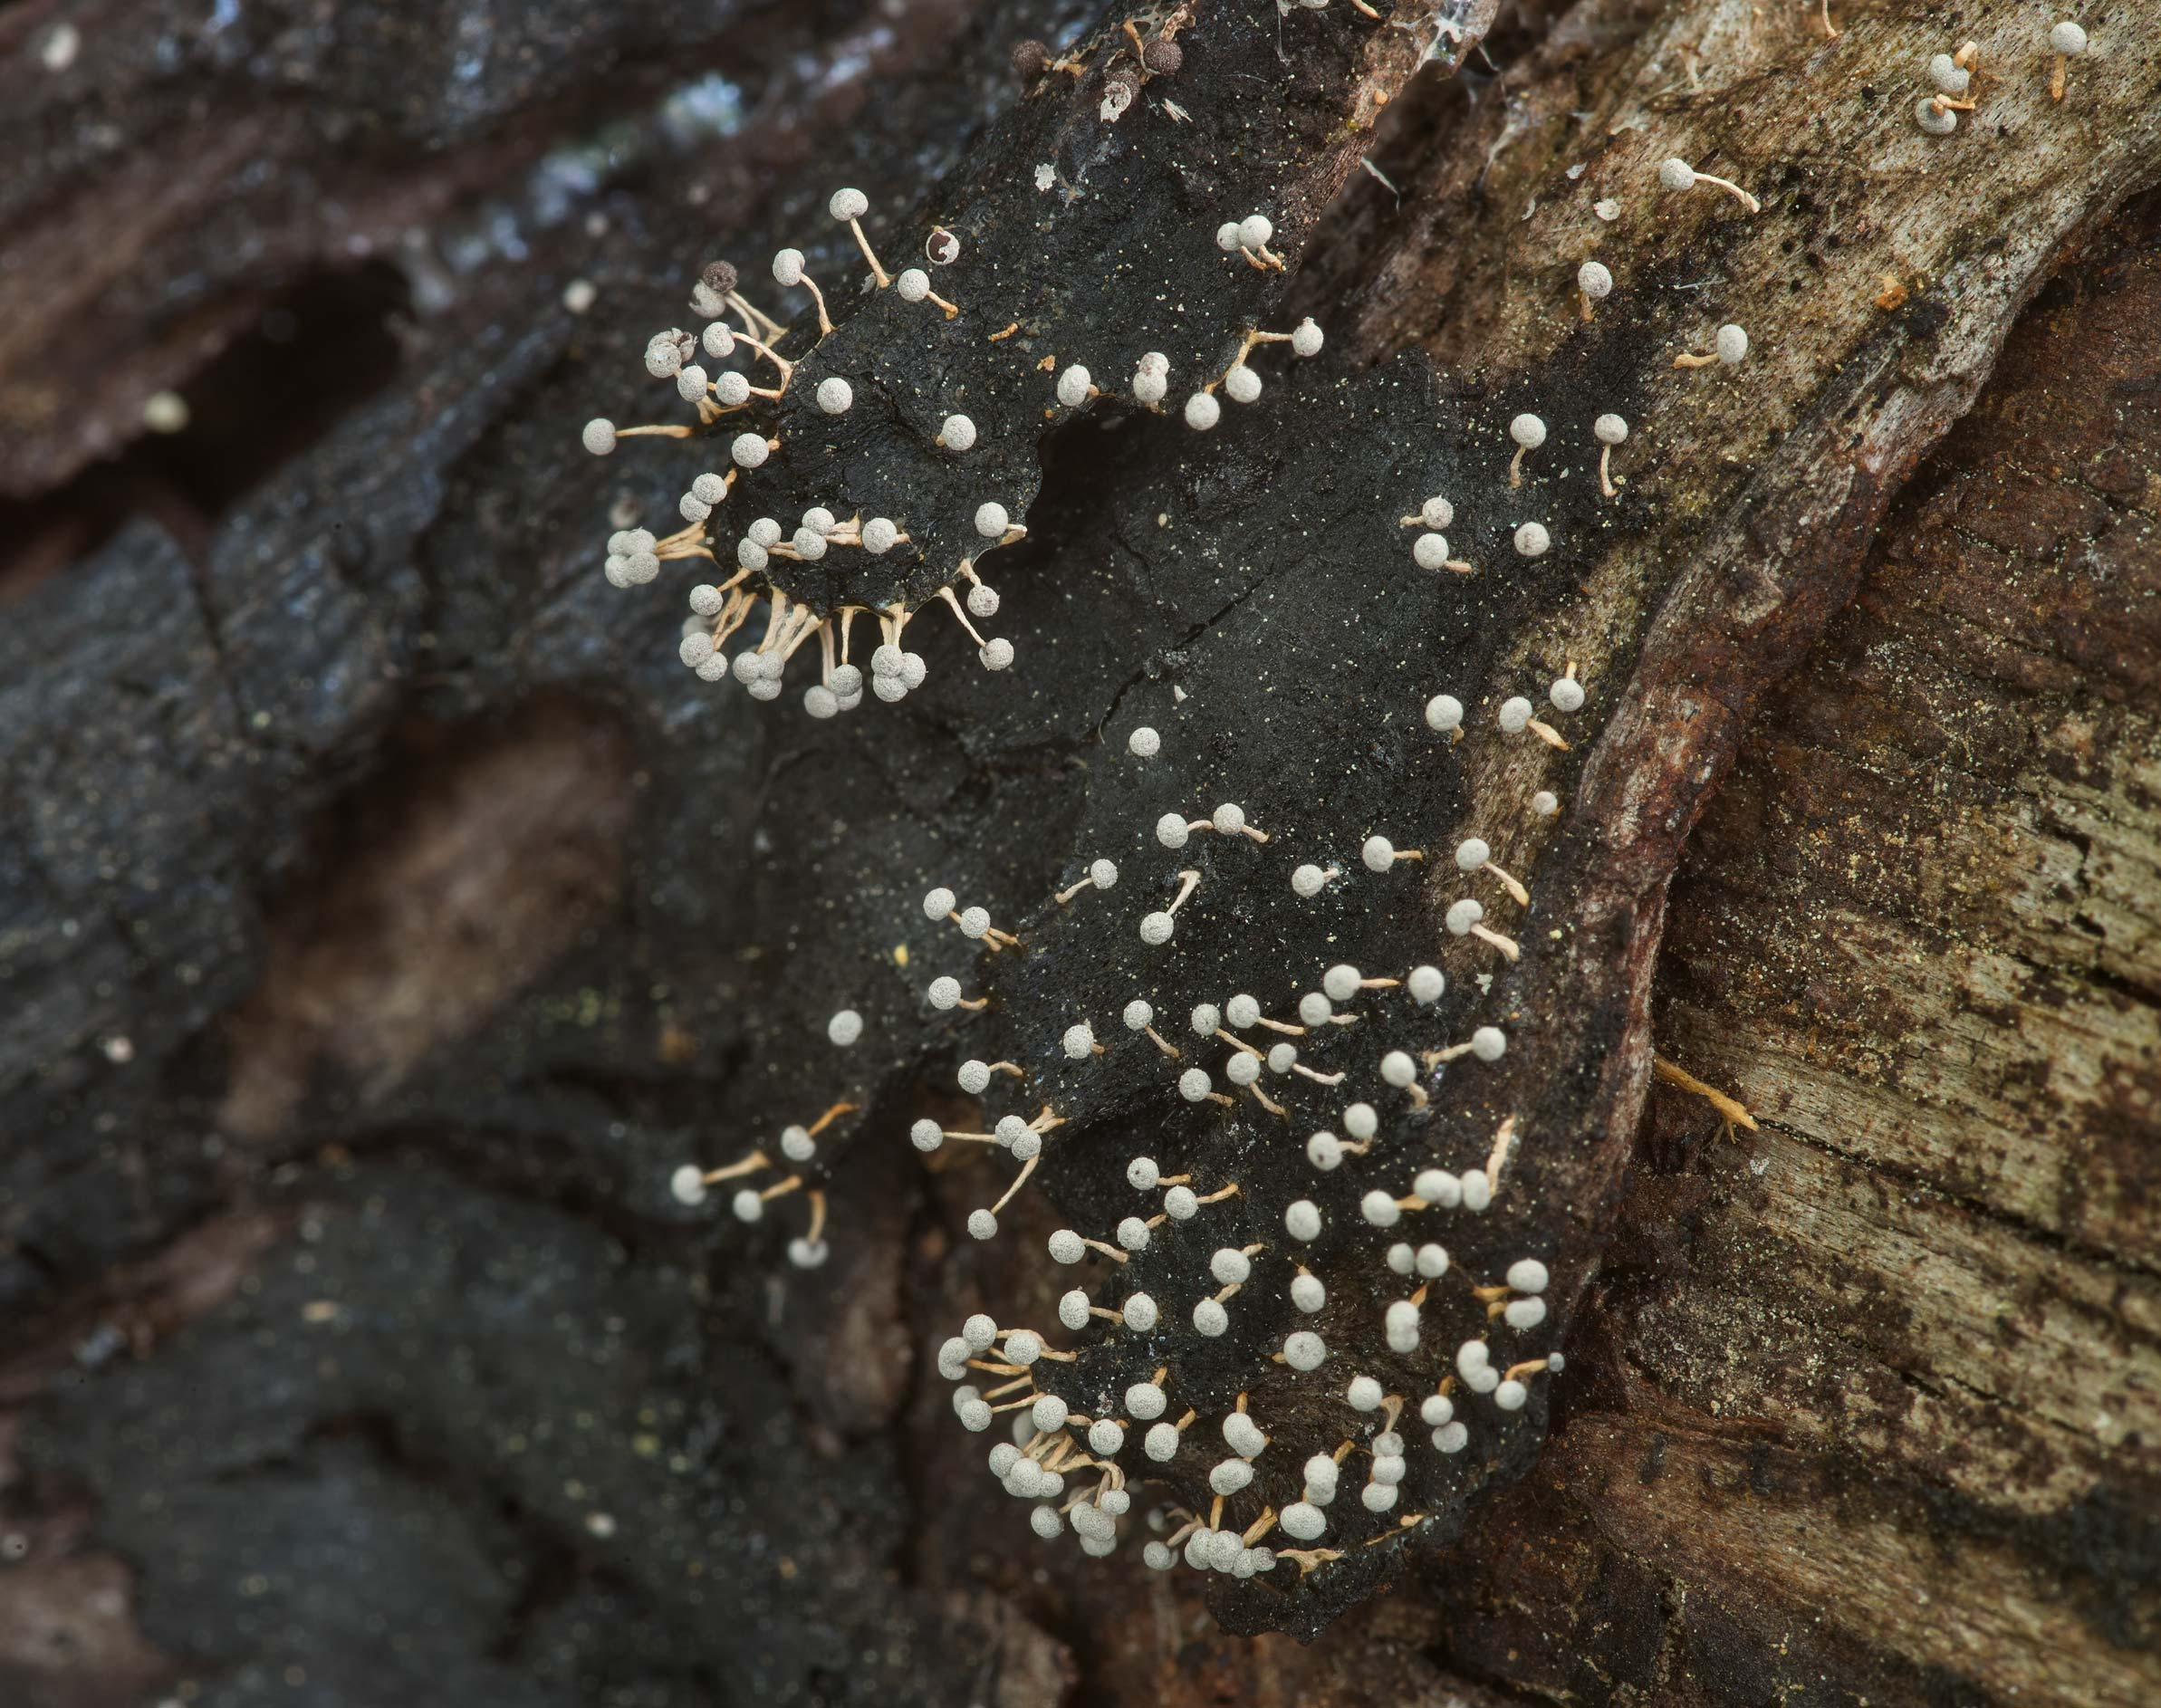 Some tiny slime mold on a log on Stubblefield...in Sam Houston National Forest. Texas